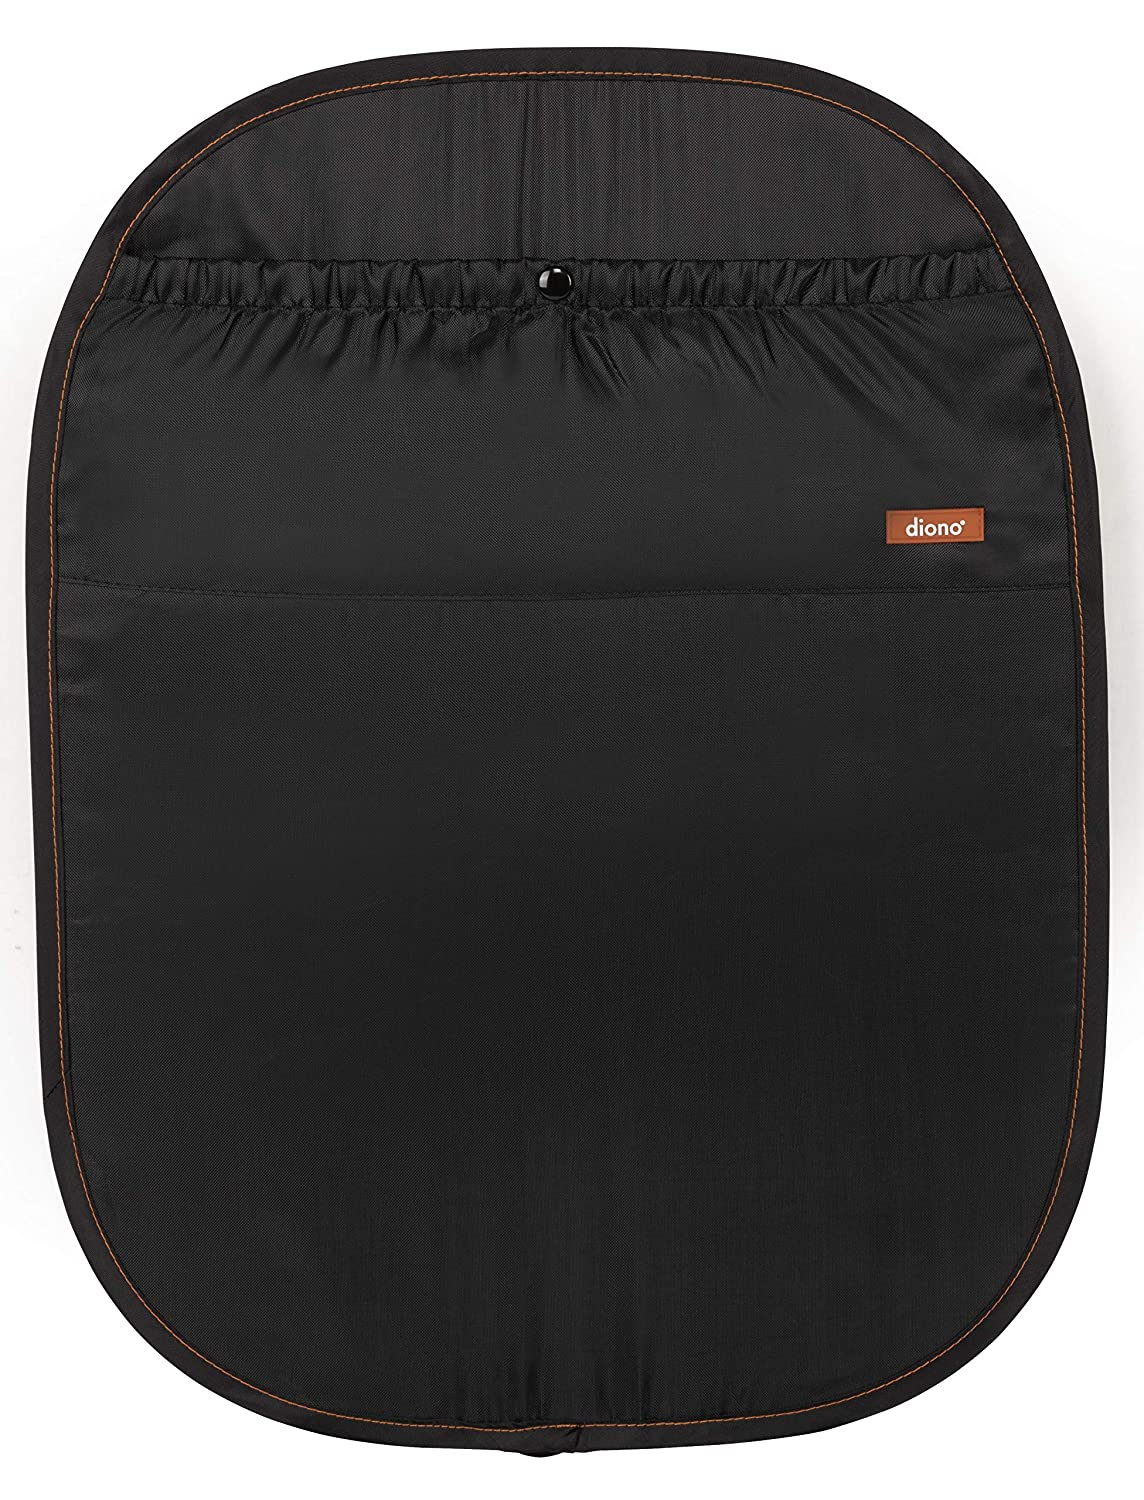 Diono Stuff N Scuff Car Seat Back Protector For Newborns And Above Black Baby